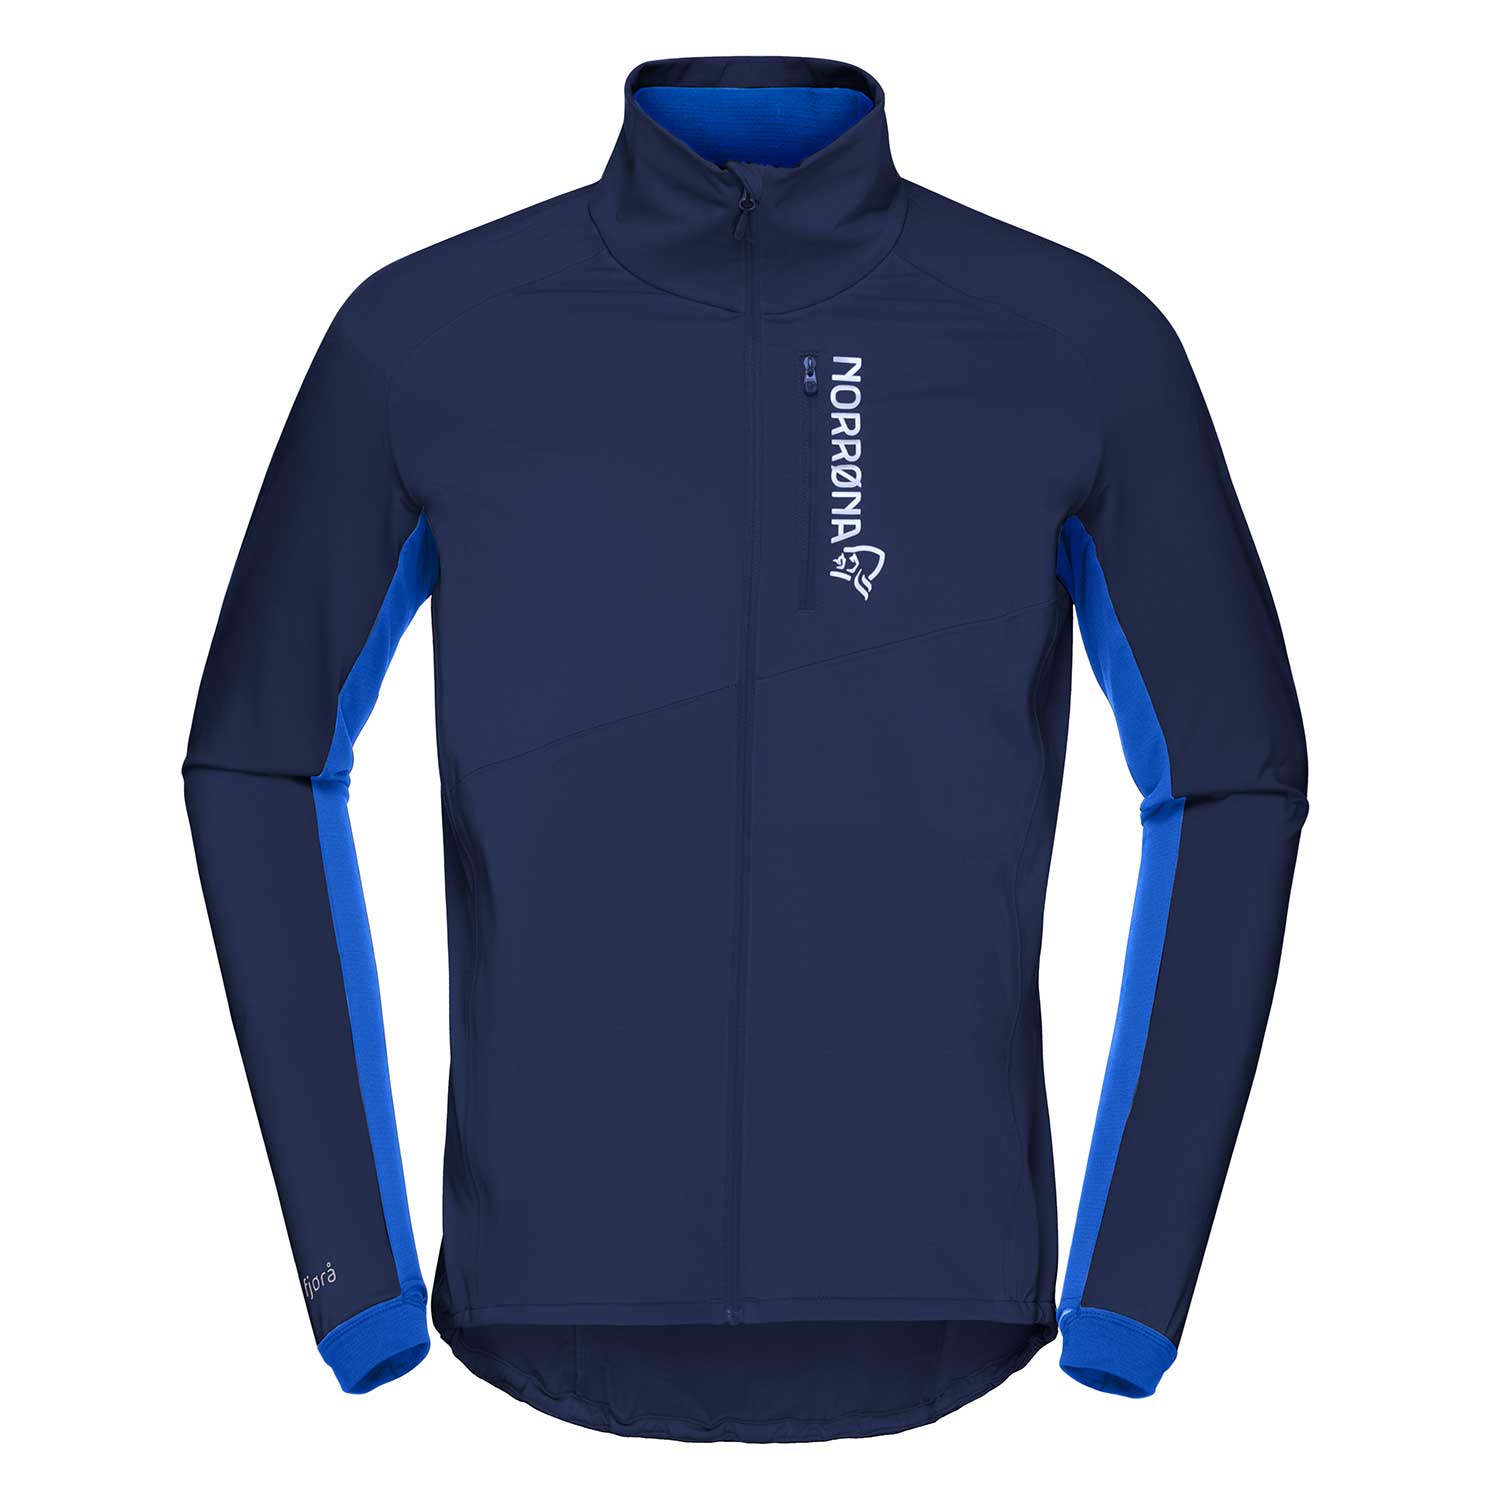 fjora warmflex Jacket (M)